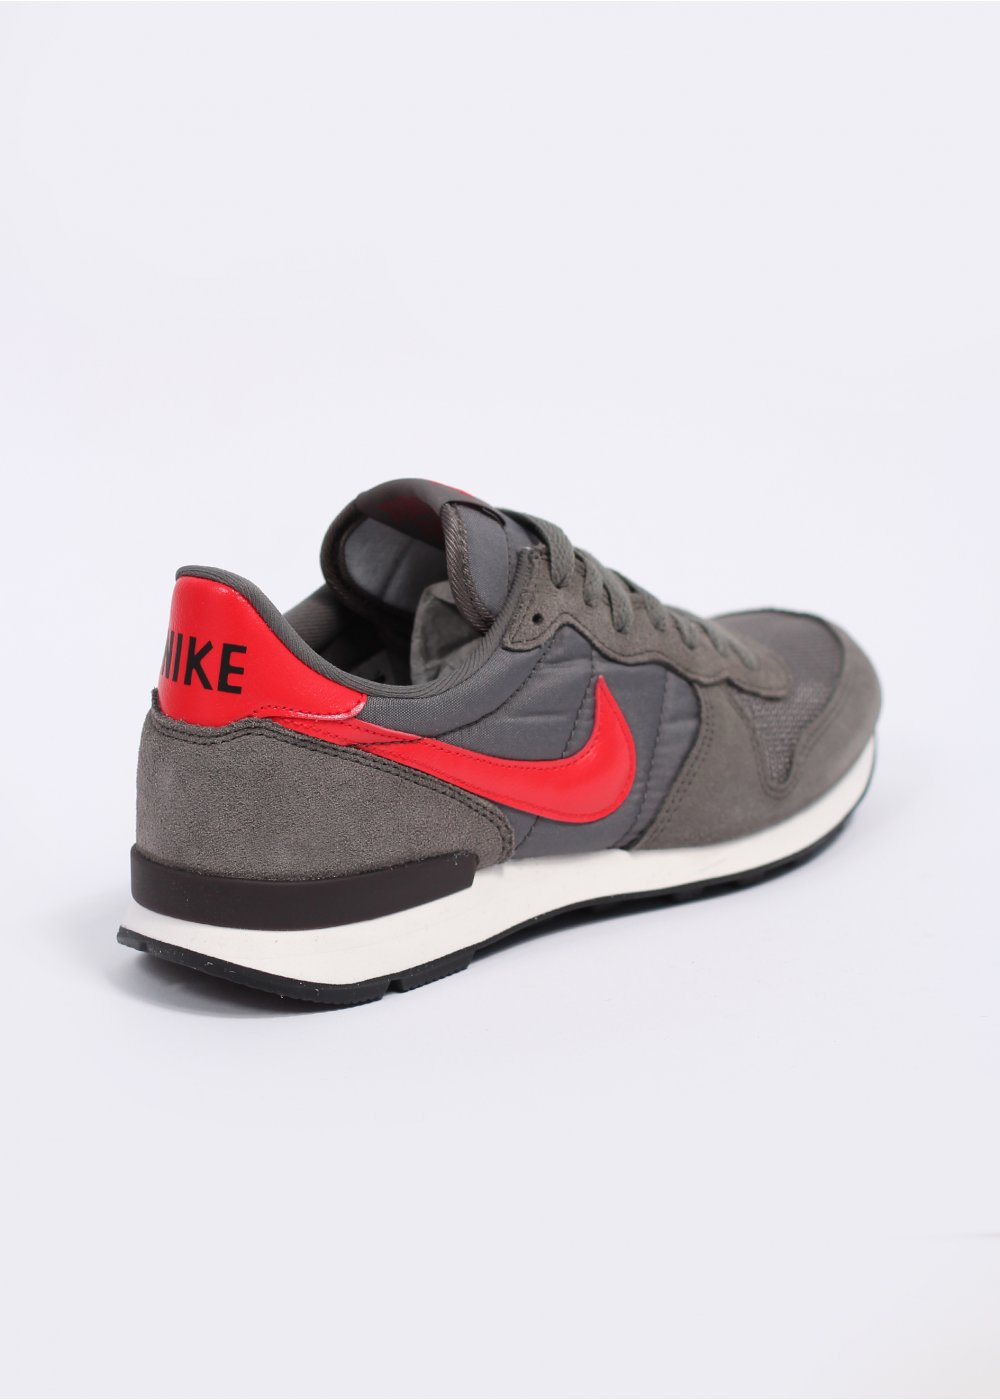 san francisco dc0bd 4e879 Internationalist Trainers - Dark Pewter   Light Crimson